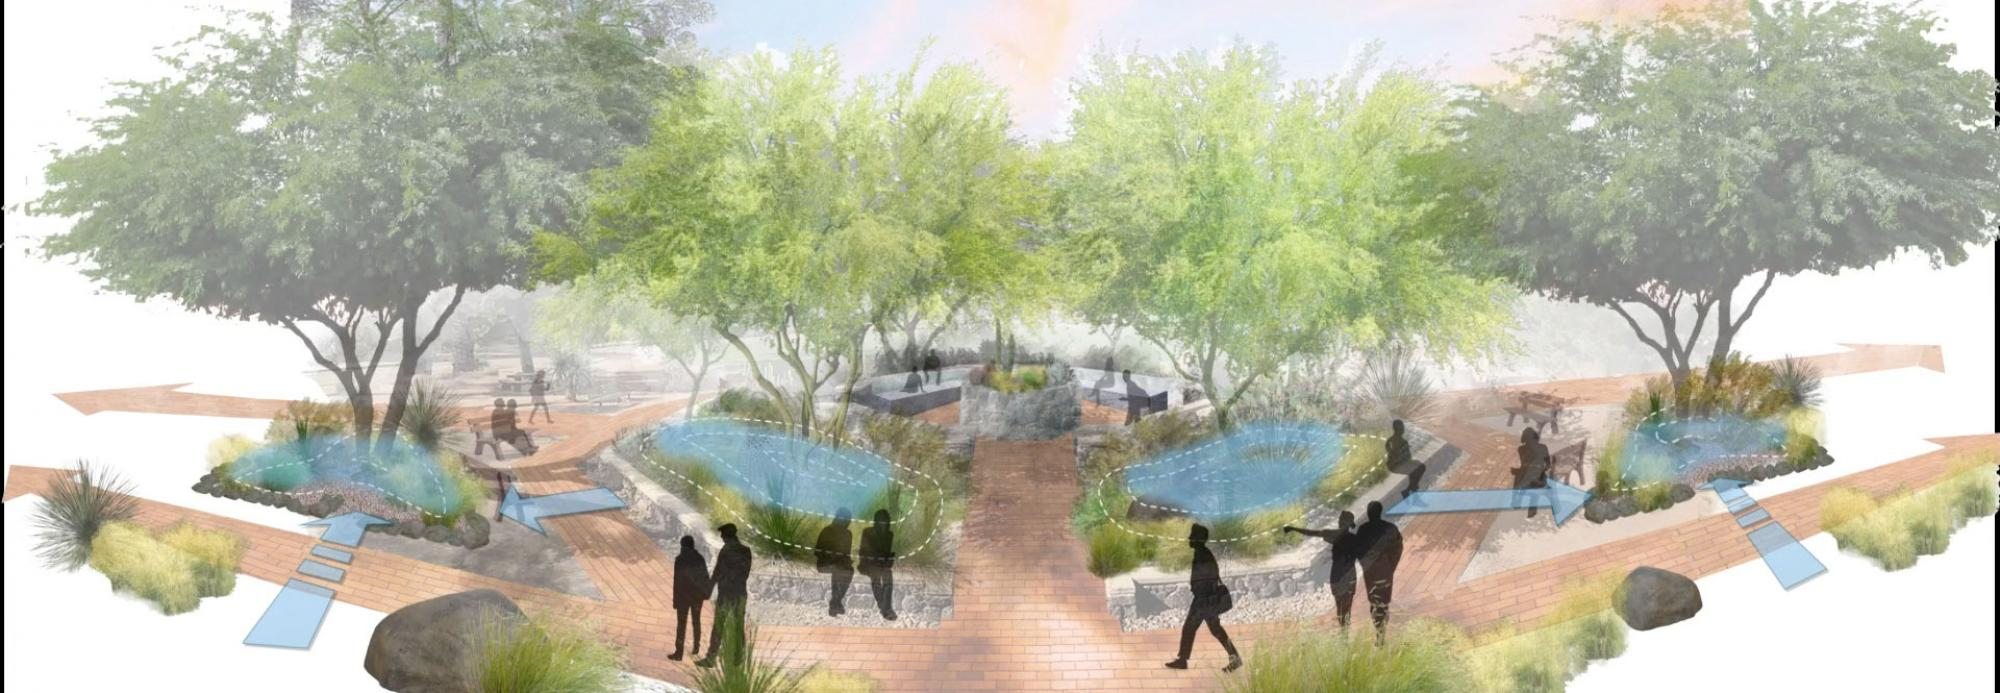 Illustration by Master of Landscape Architecture students